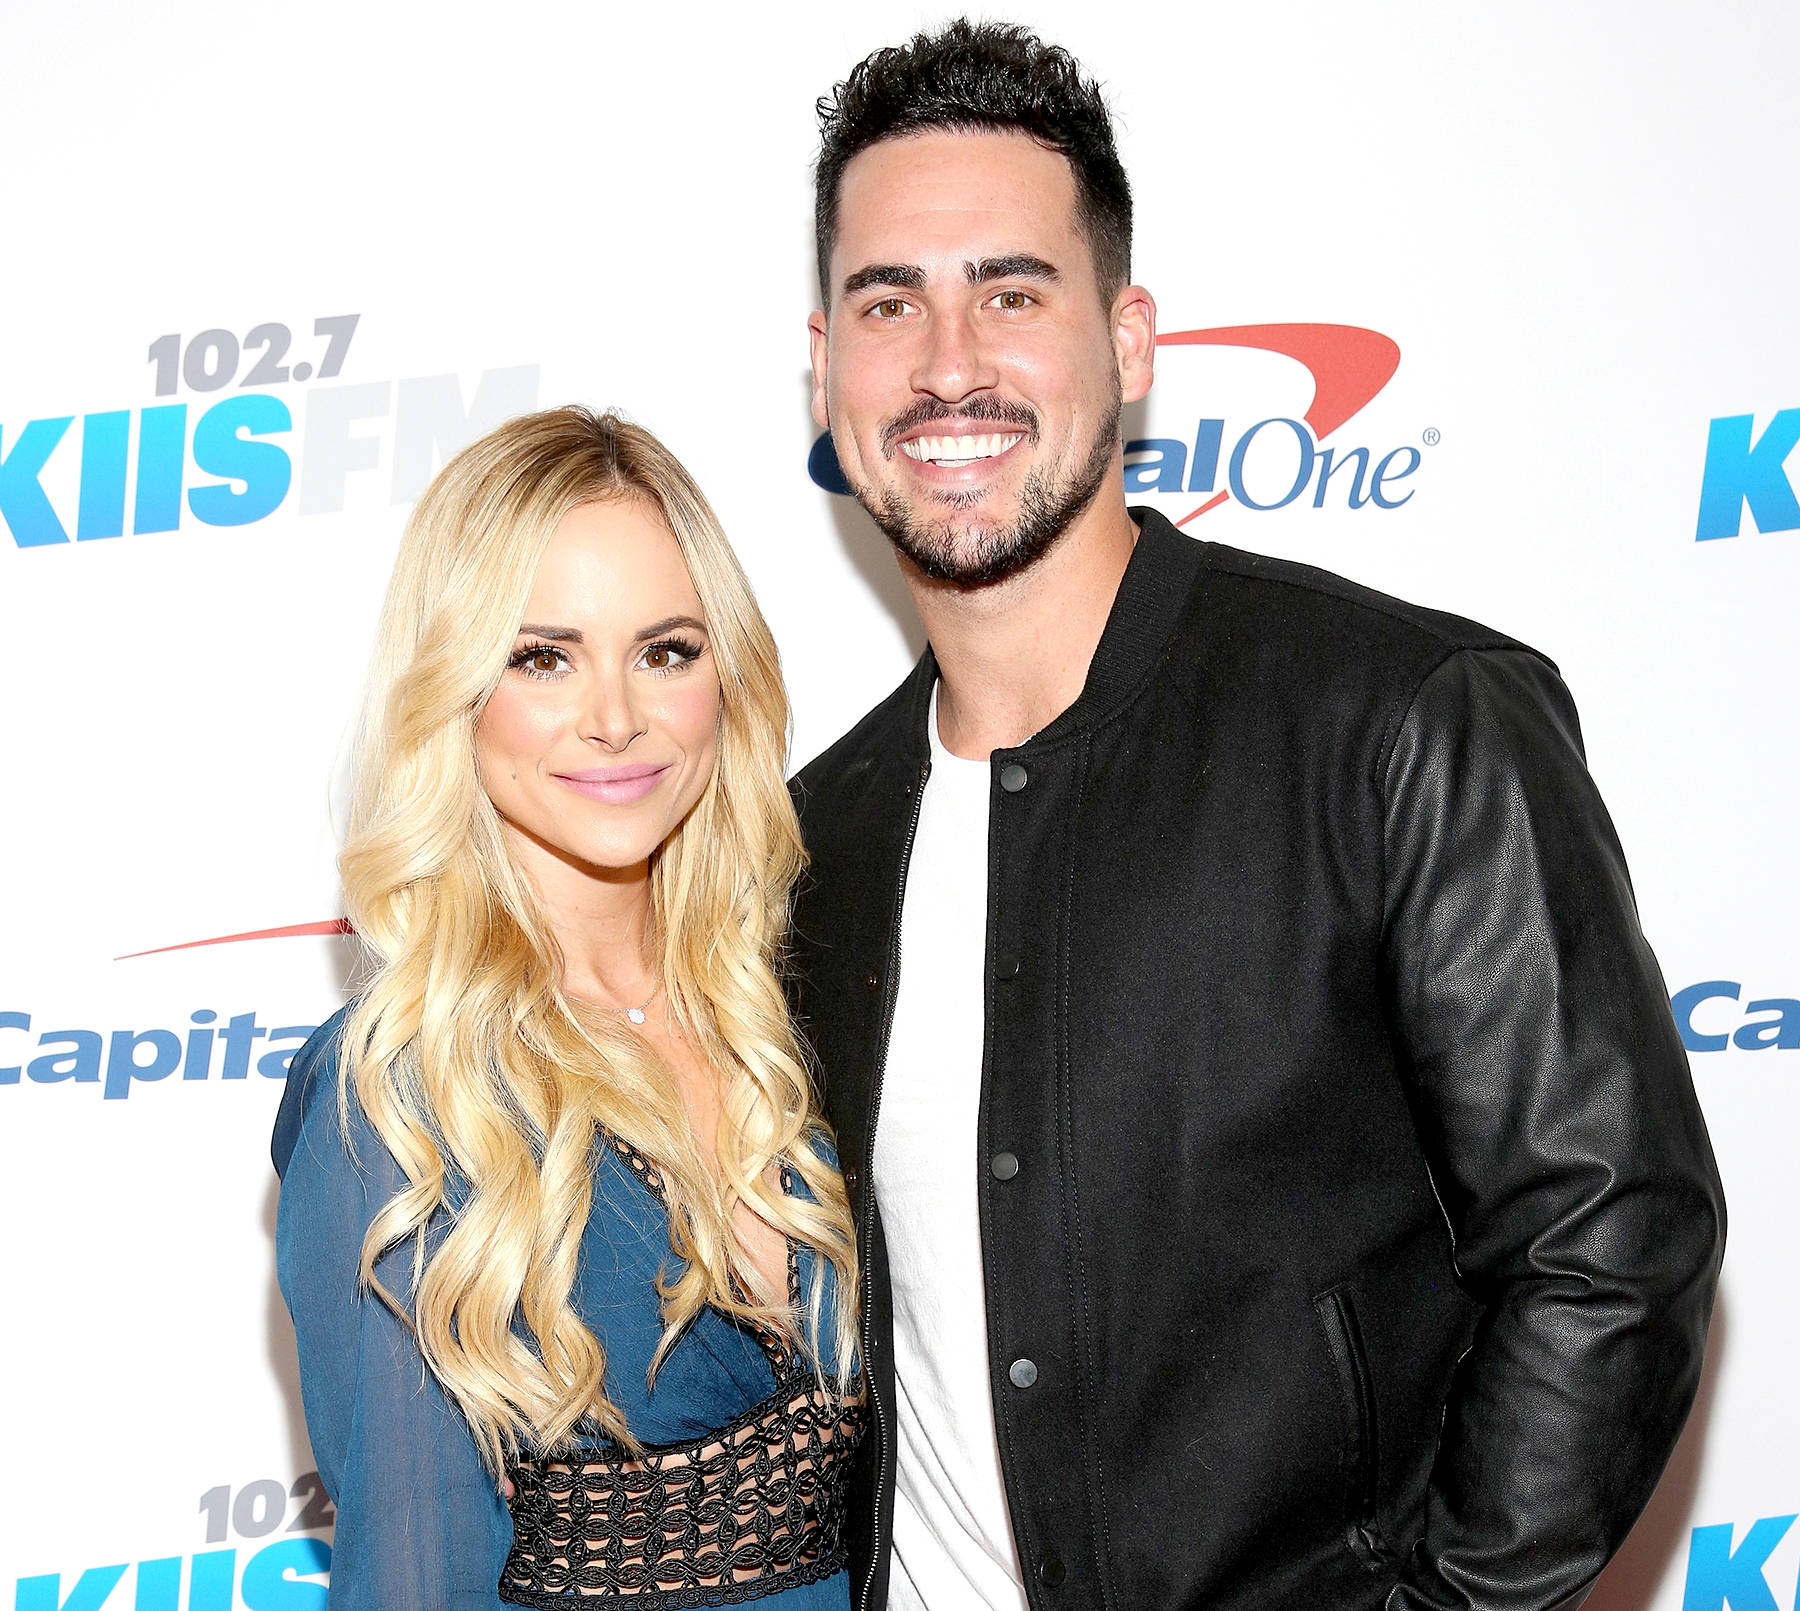 Amanda Stanton and Josh Murray attend 102.7 KIIS FM's Jingle Ball 2016 presented by Capital One at Staples Center in Los Angeles on December 2, 2016.